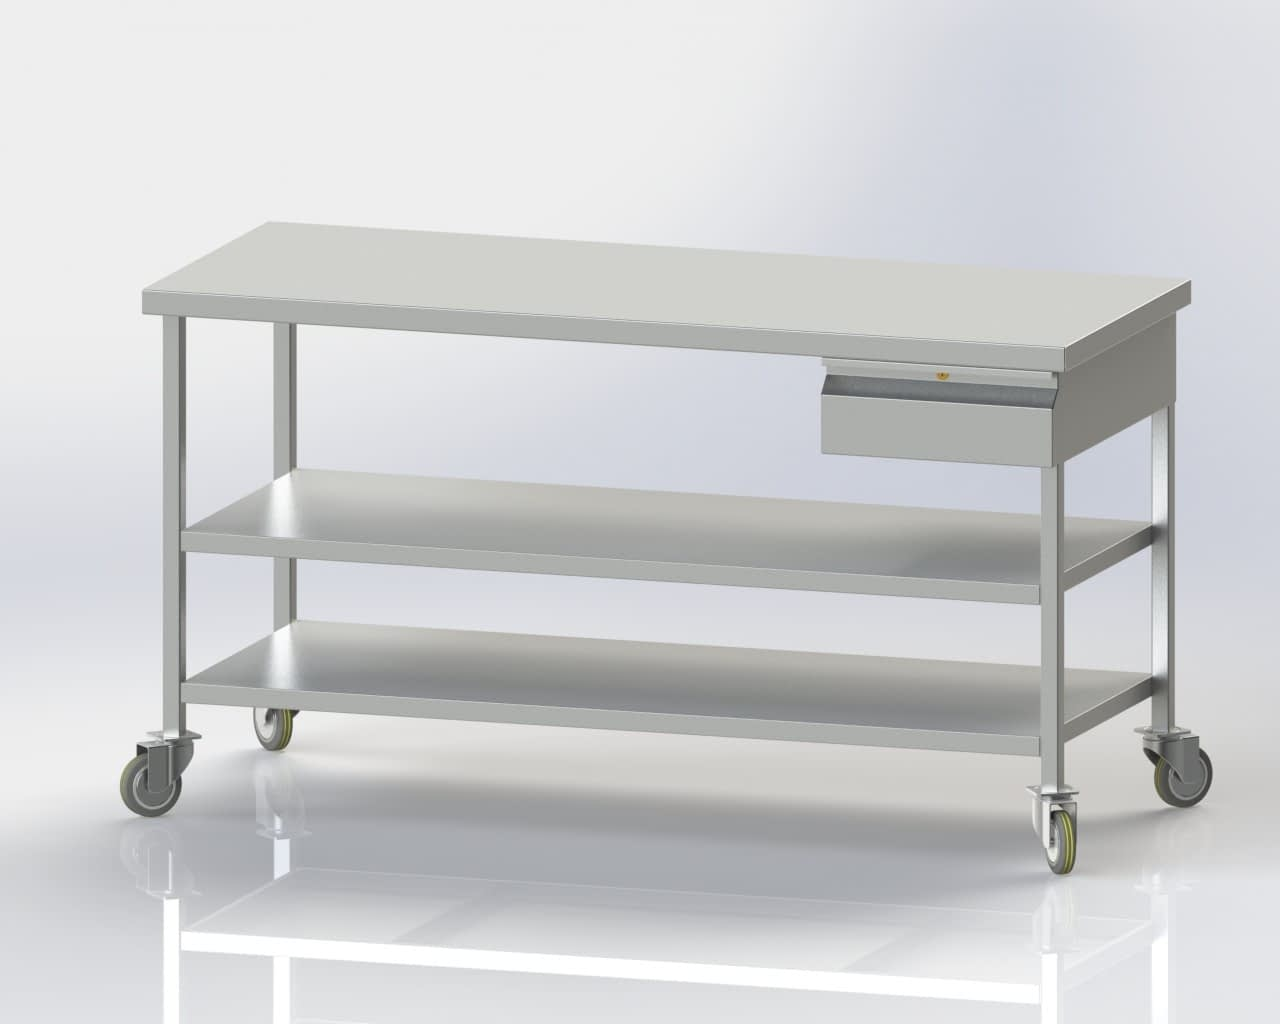 Mobile Table with Lower and Intermediate Shelves and Single Drawer